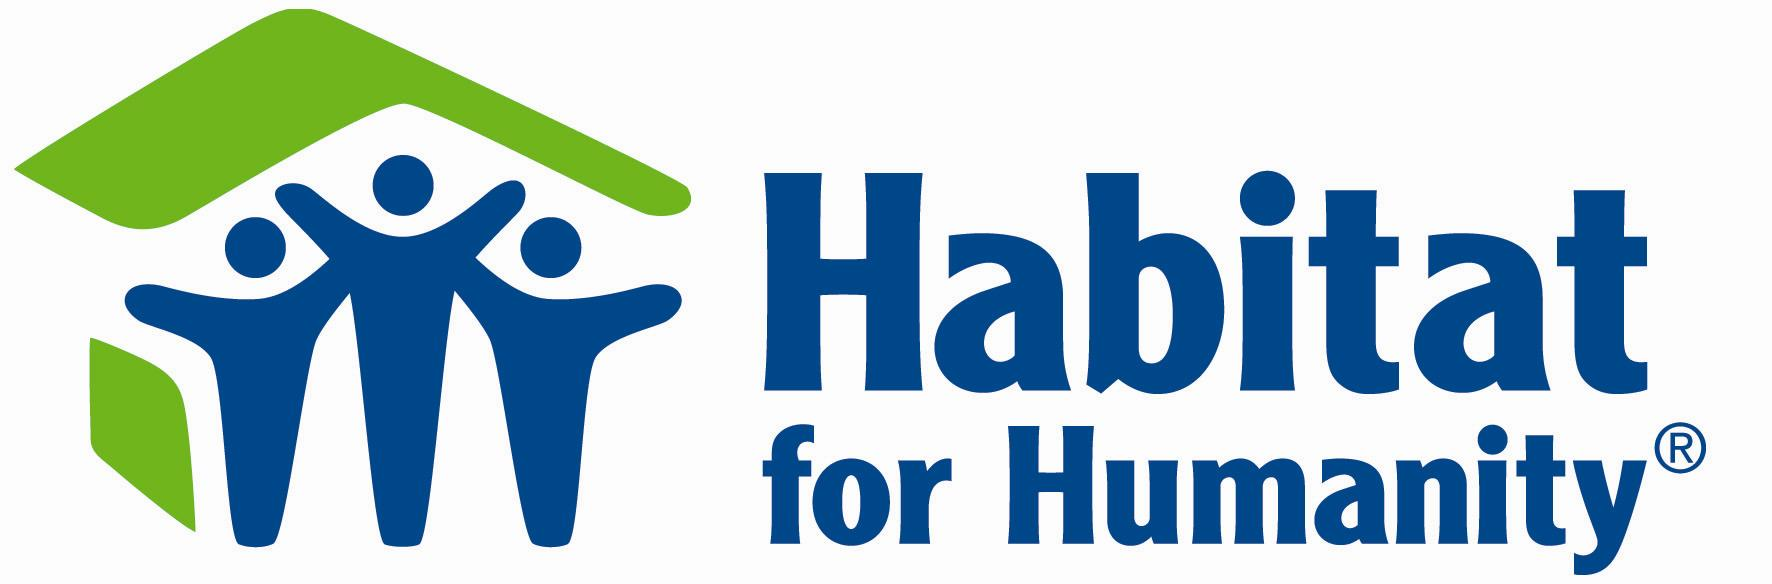 Donne manager Whirpool e volontarie muratore per Habitat for Humanity